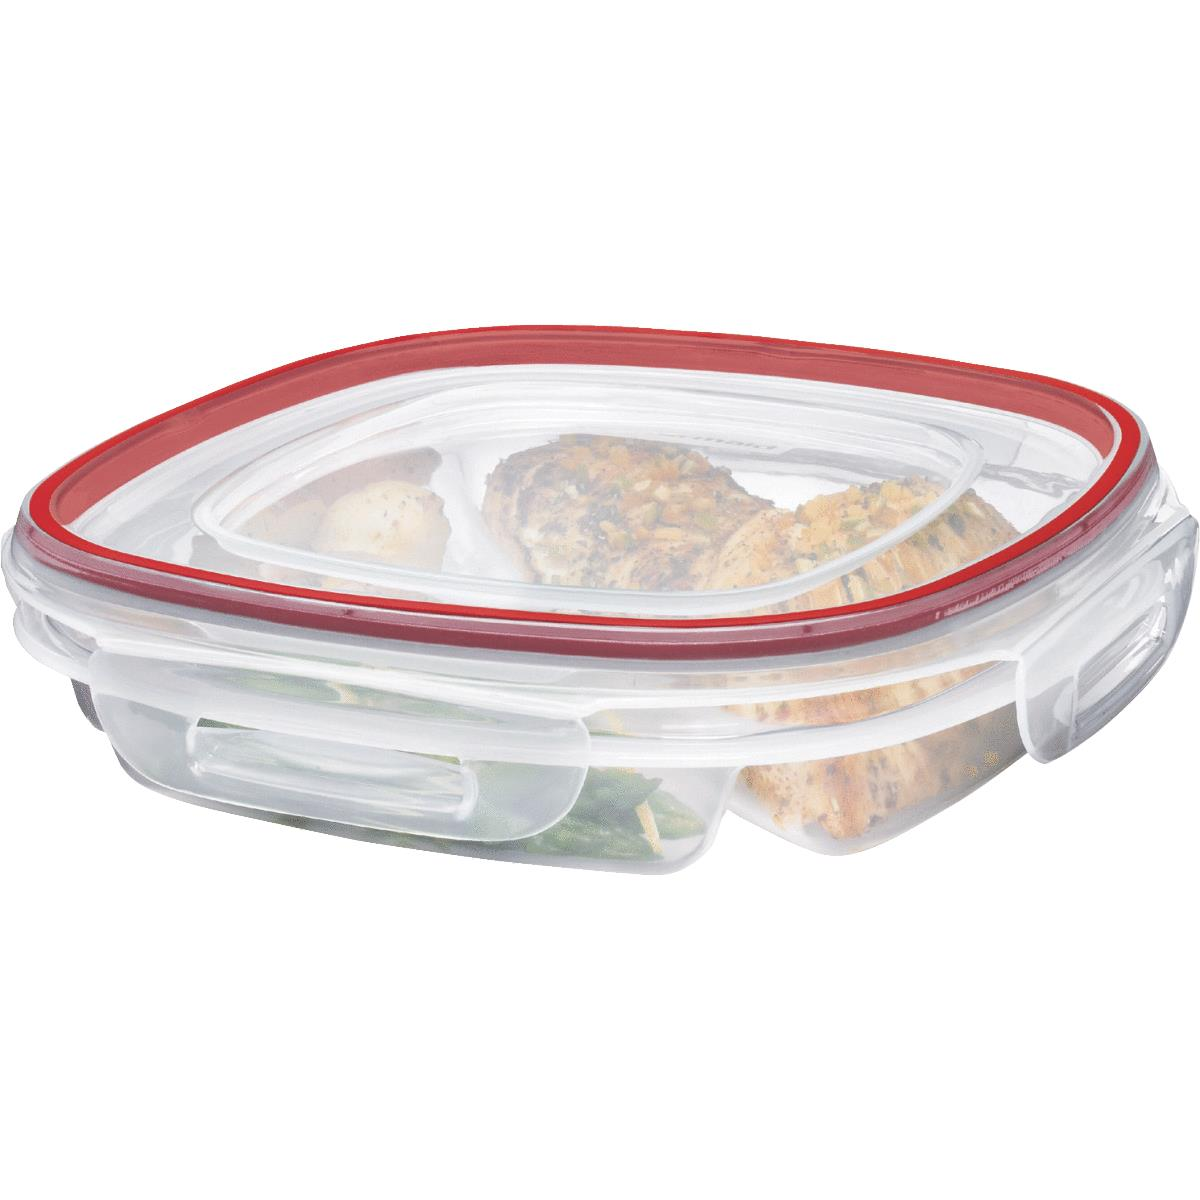 Rubbermaid Lock-its Divided Food Storage Container